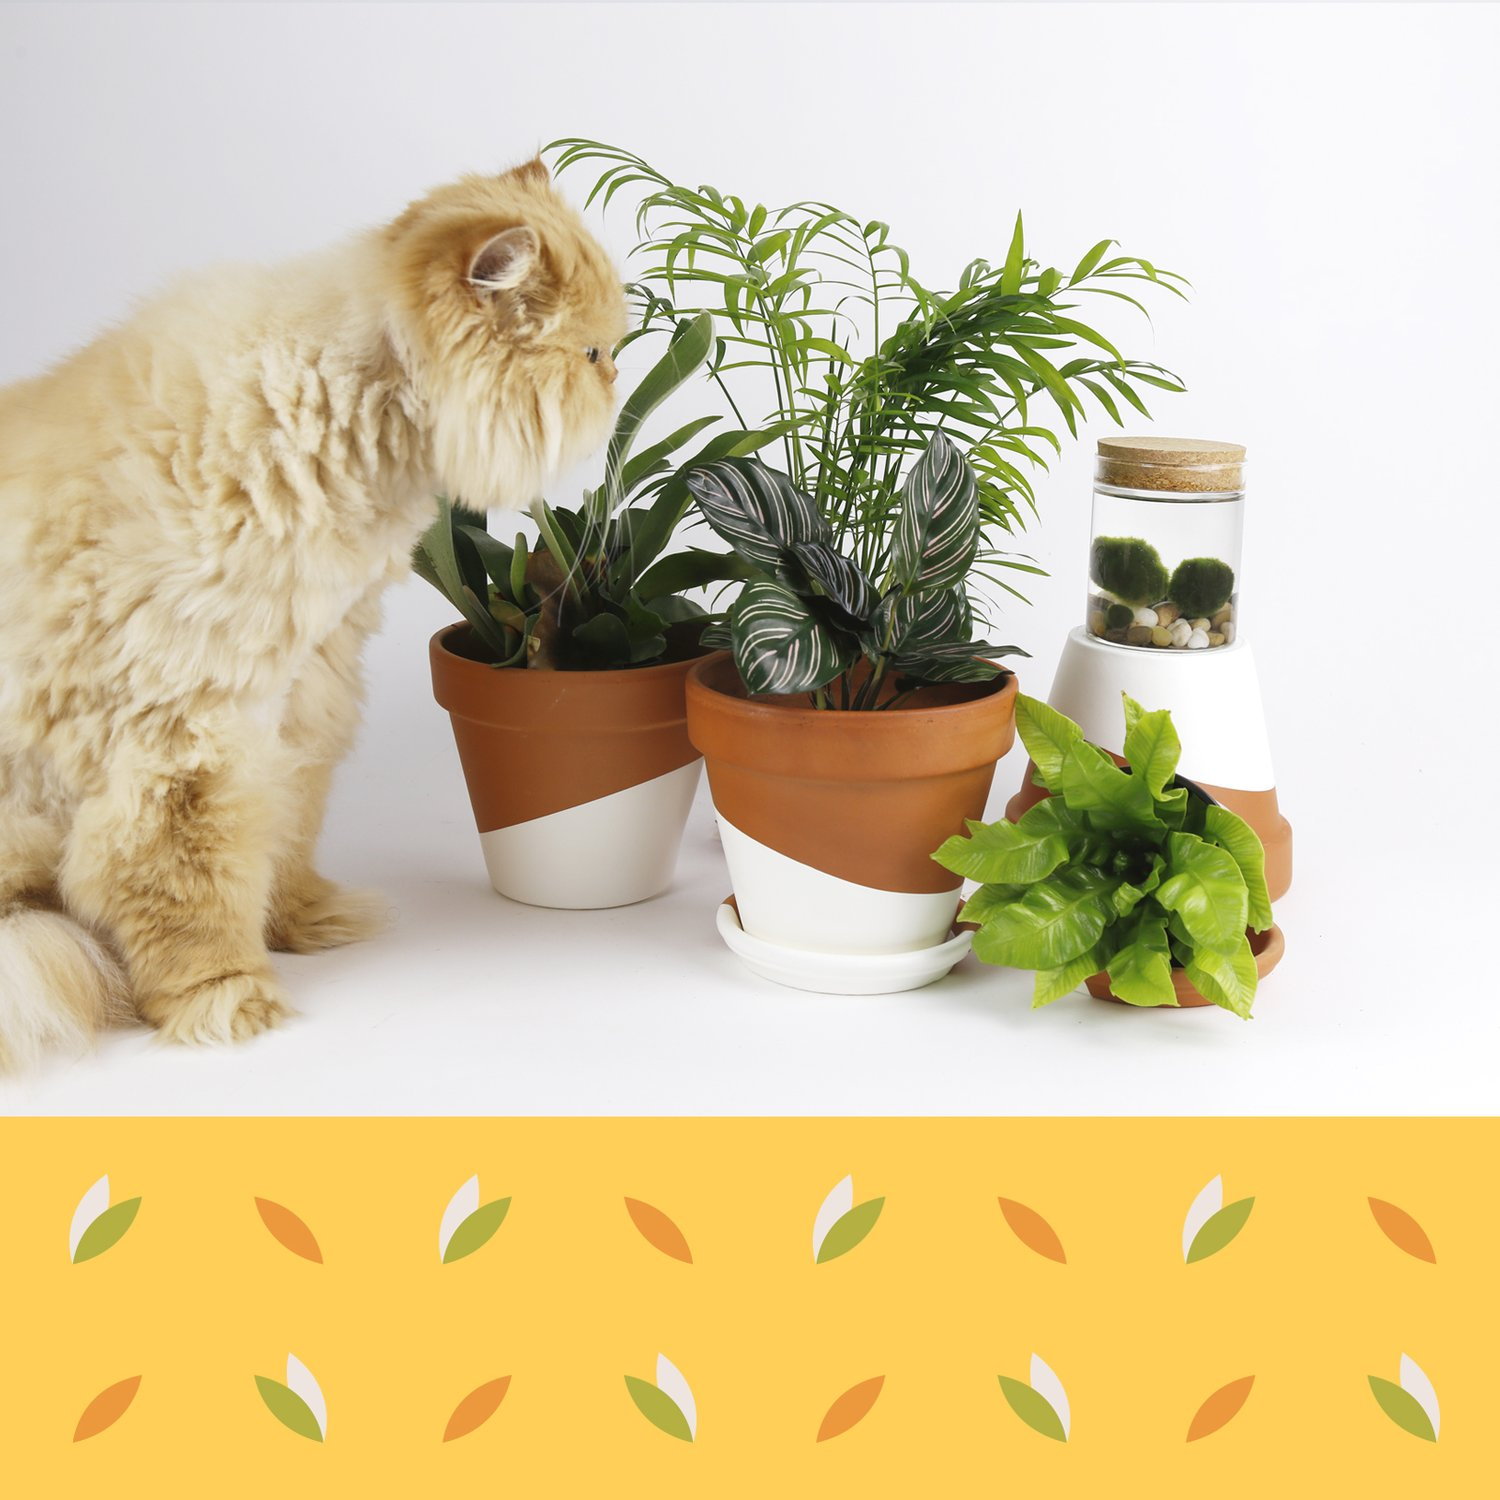 Cat approaching several plants